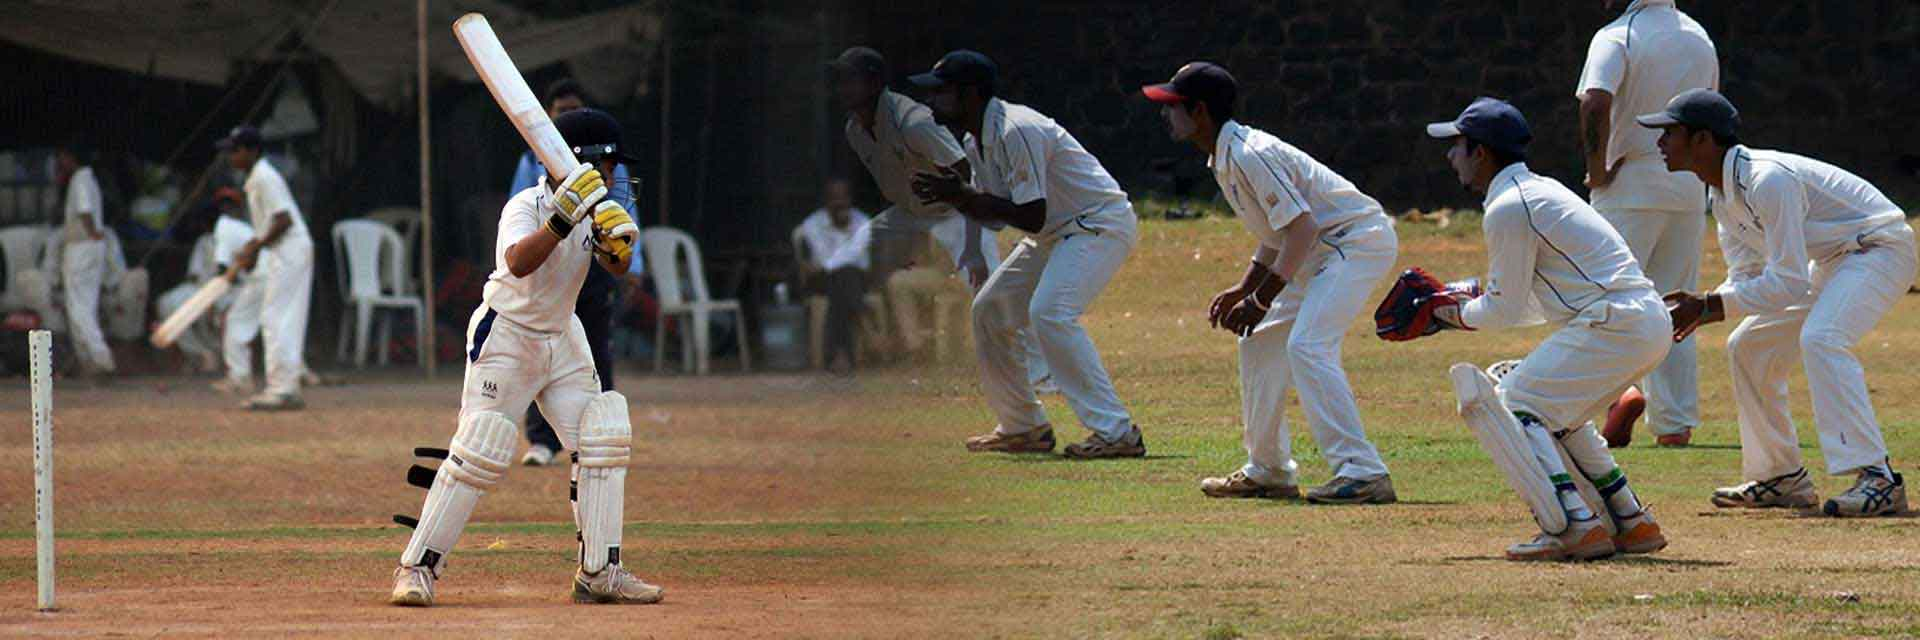 inter-collegiate T20 cricket tournament